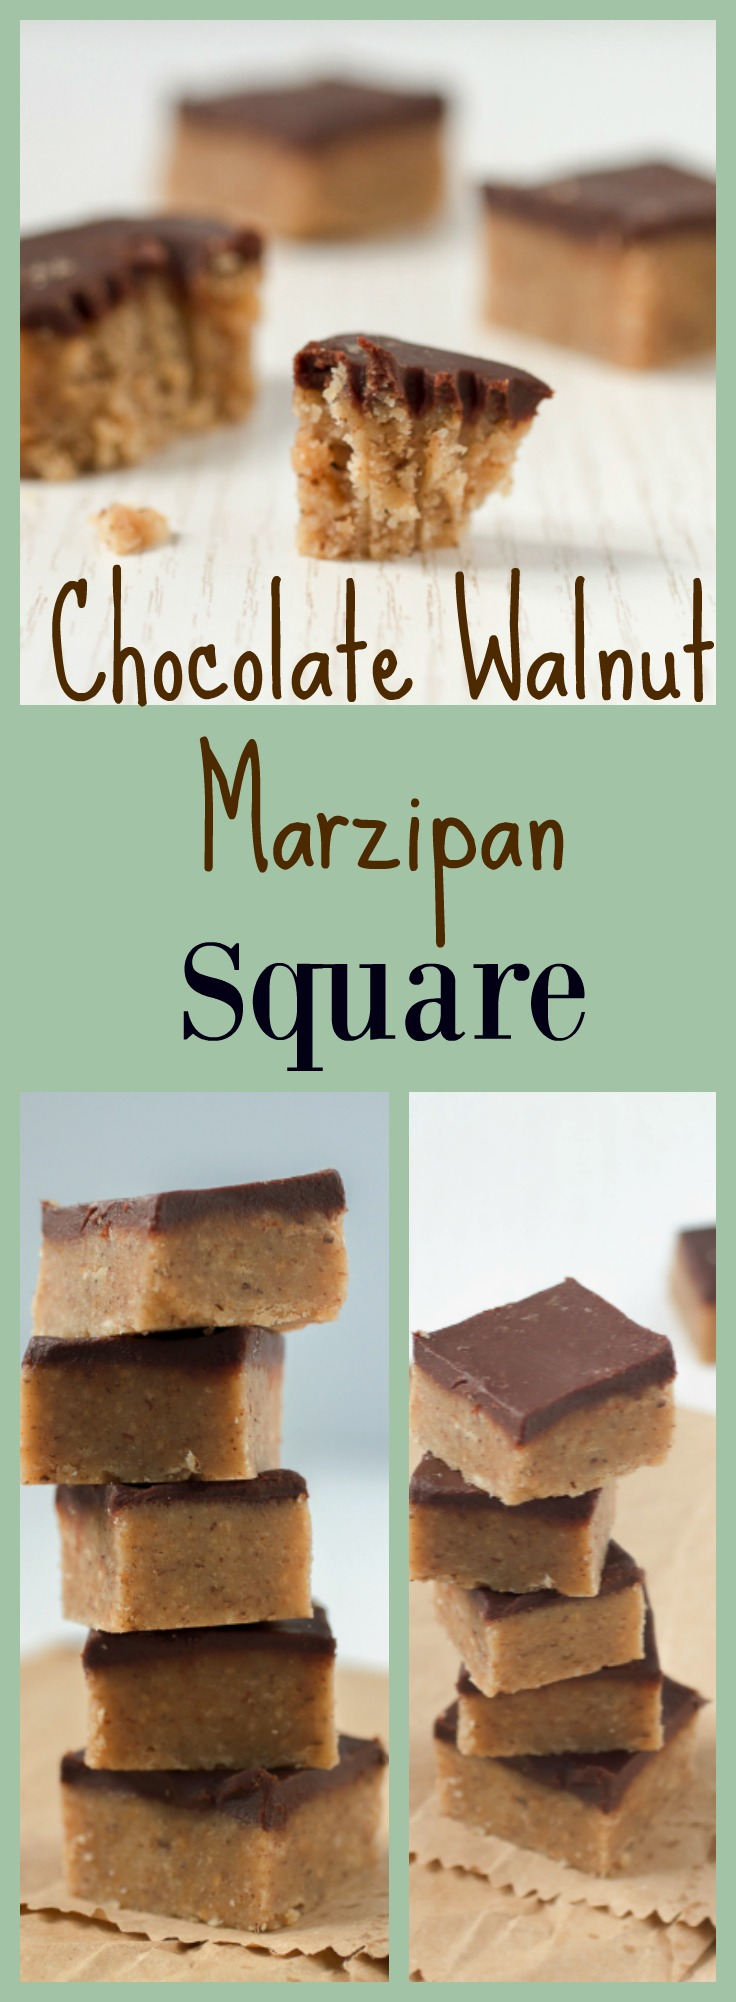 Chocolate Walnut Marzipan Squares: a unique take on an old favorite.